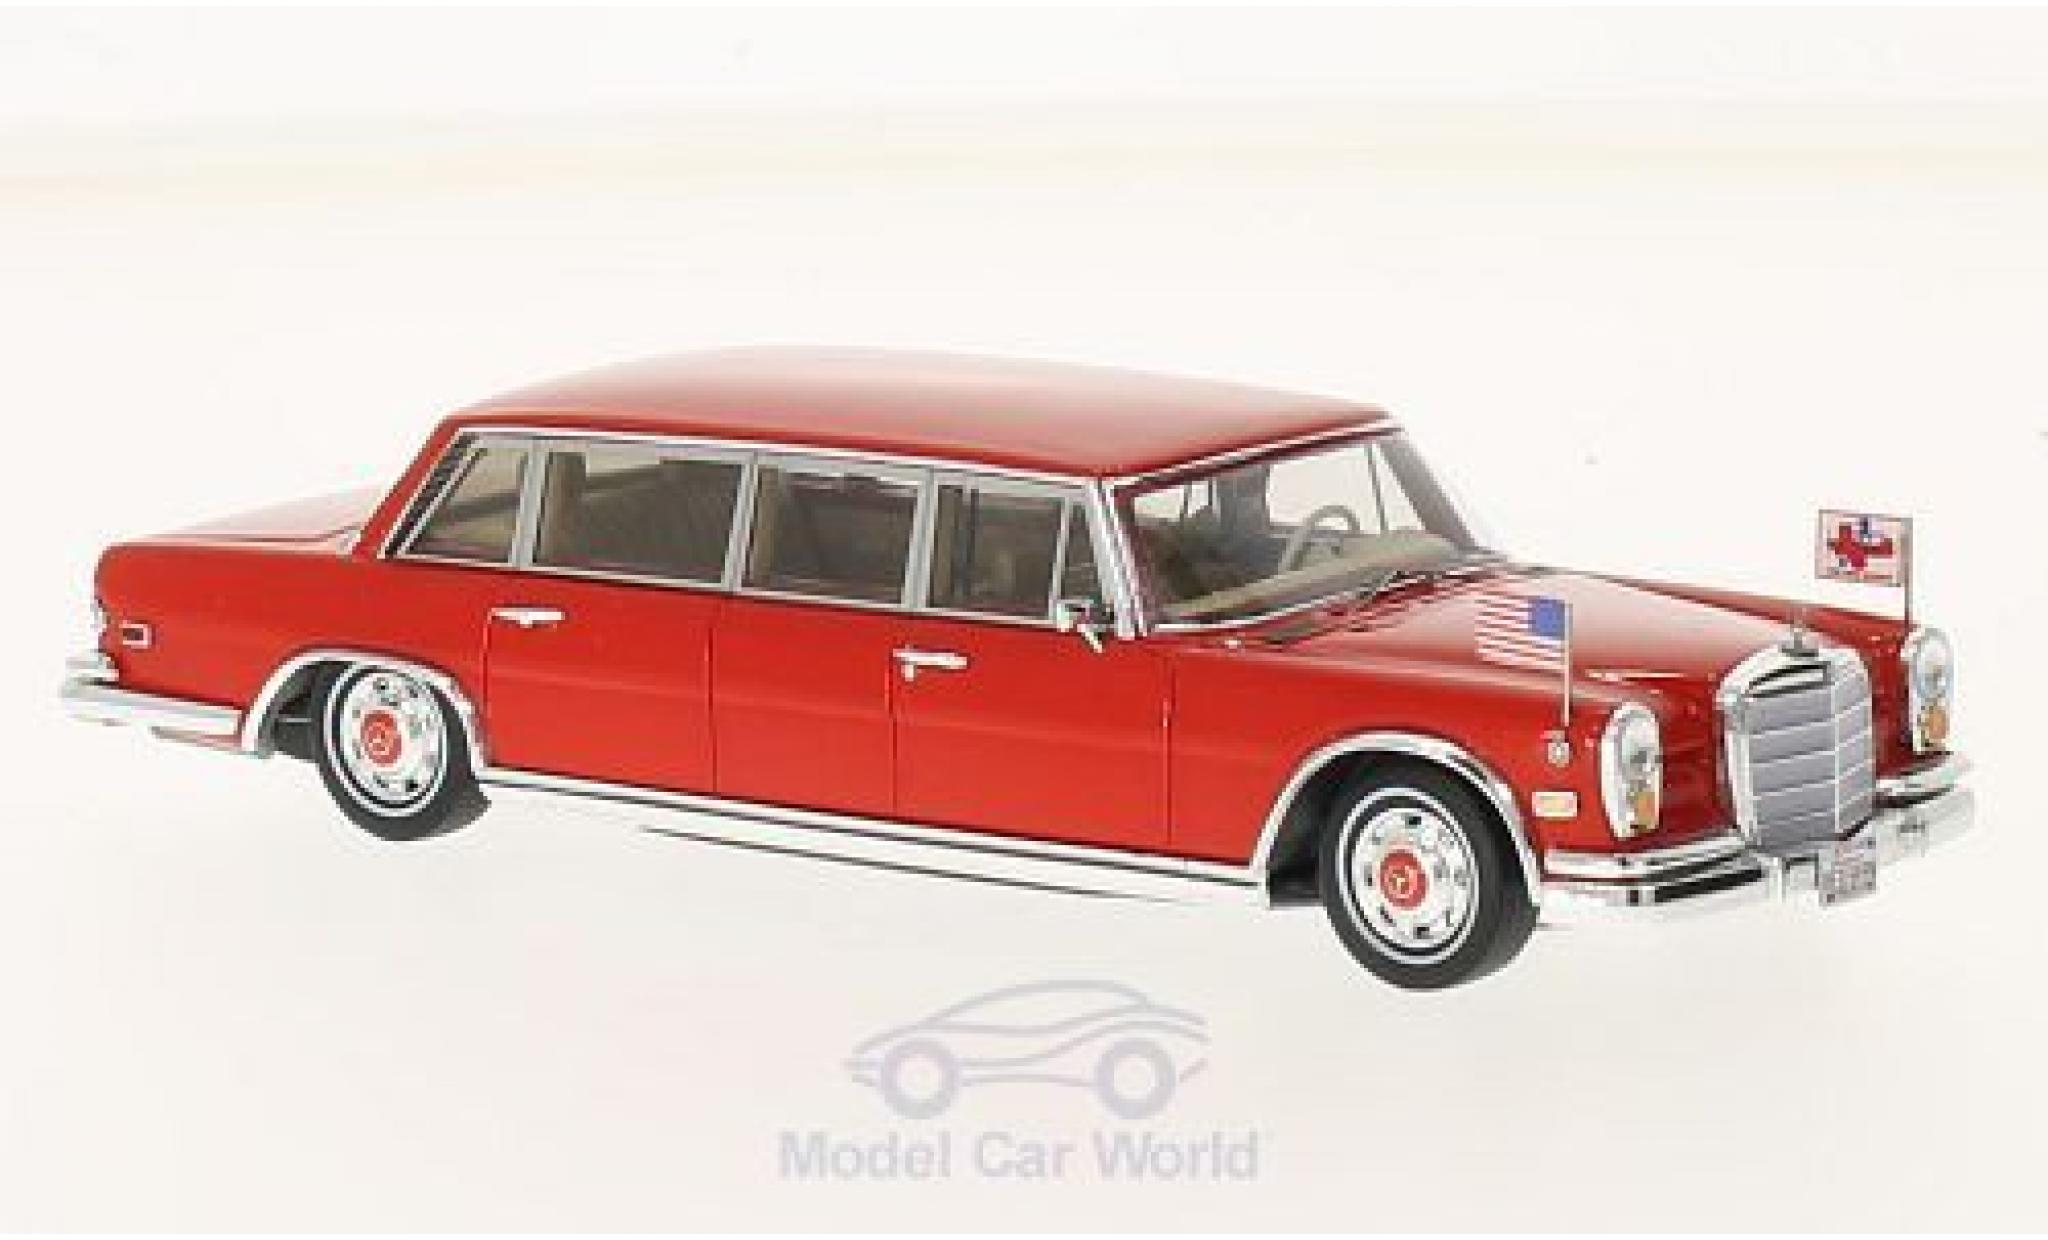 Mercedes 600 Pullmann 1/43 TrueScale Miniatures 1972 Red Baron Hilton Family